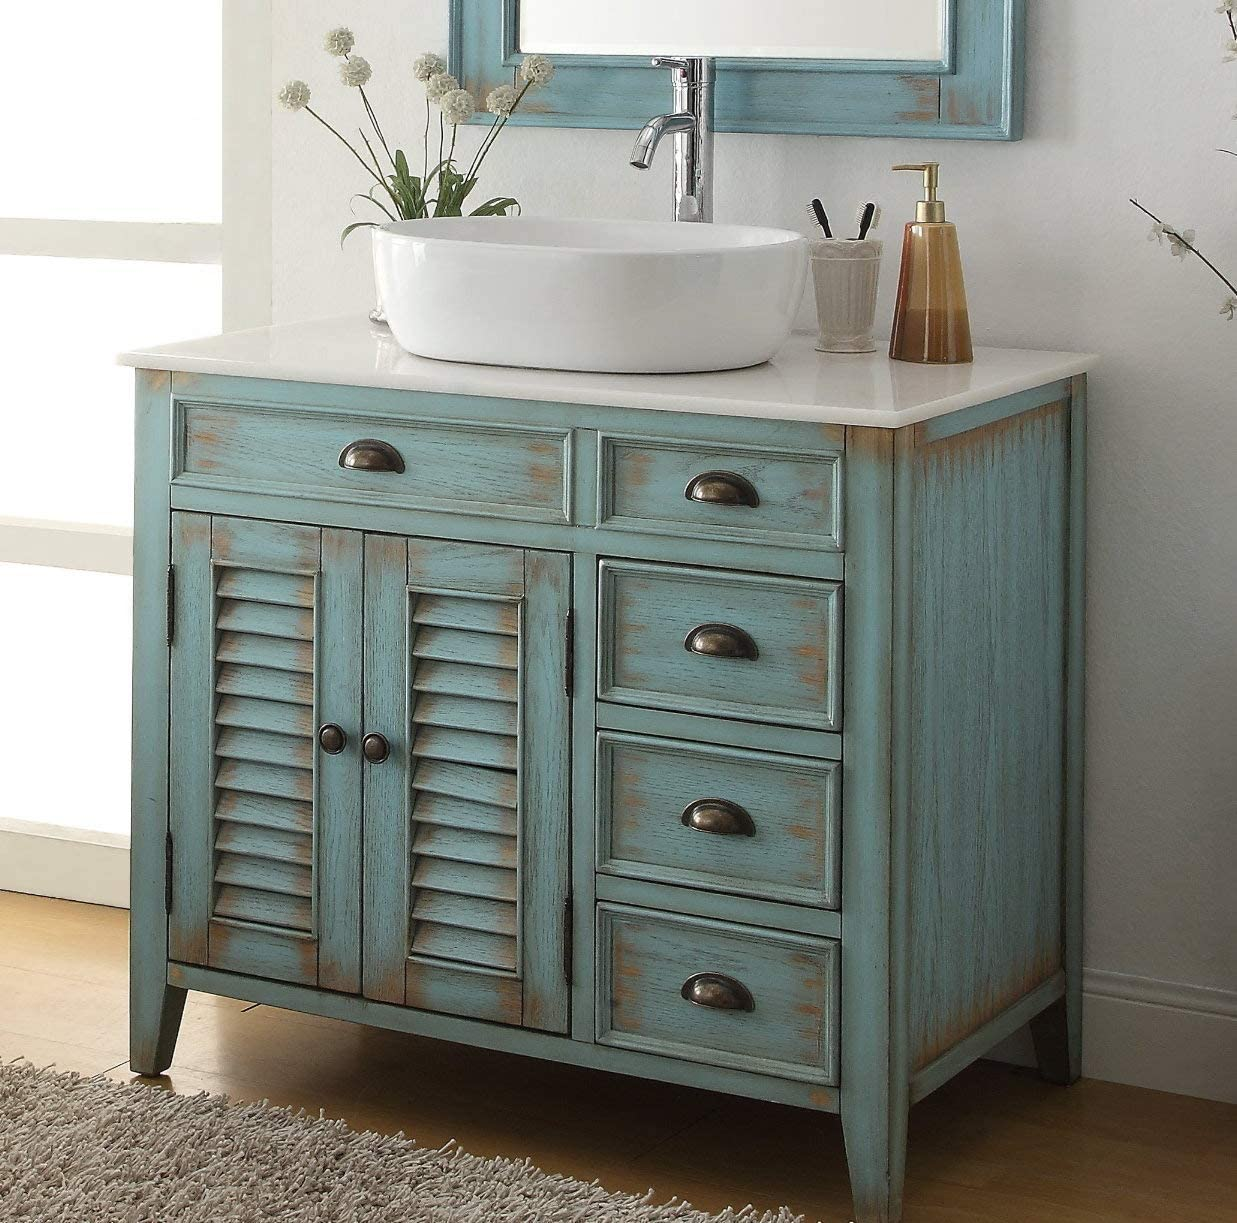 36 Benton Collection Distress Blue Abbeville Vessel Sink Bathroom Vanity CF-78886BU